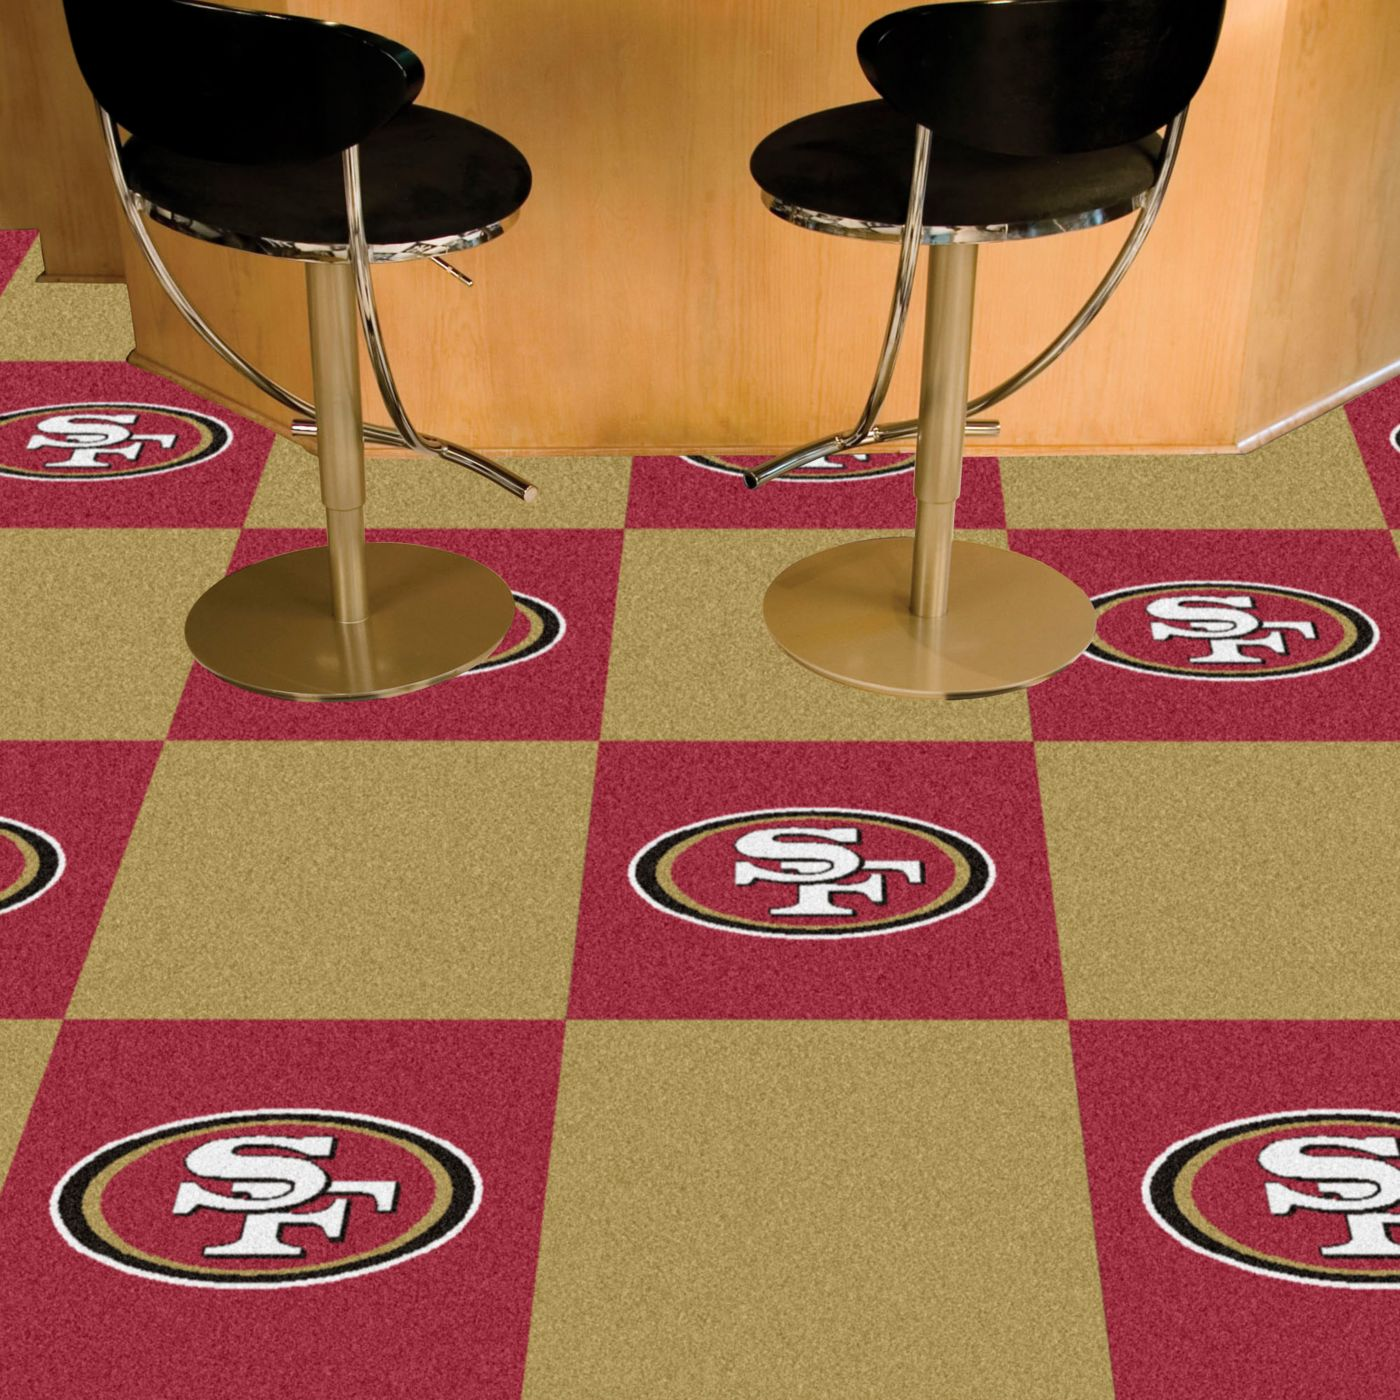 FANMATS San Francisco 49ers Team Carpet Tiles